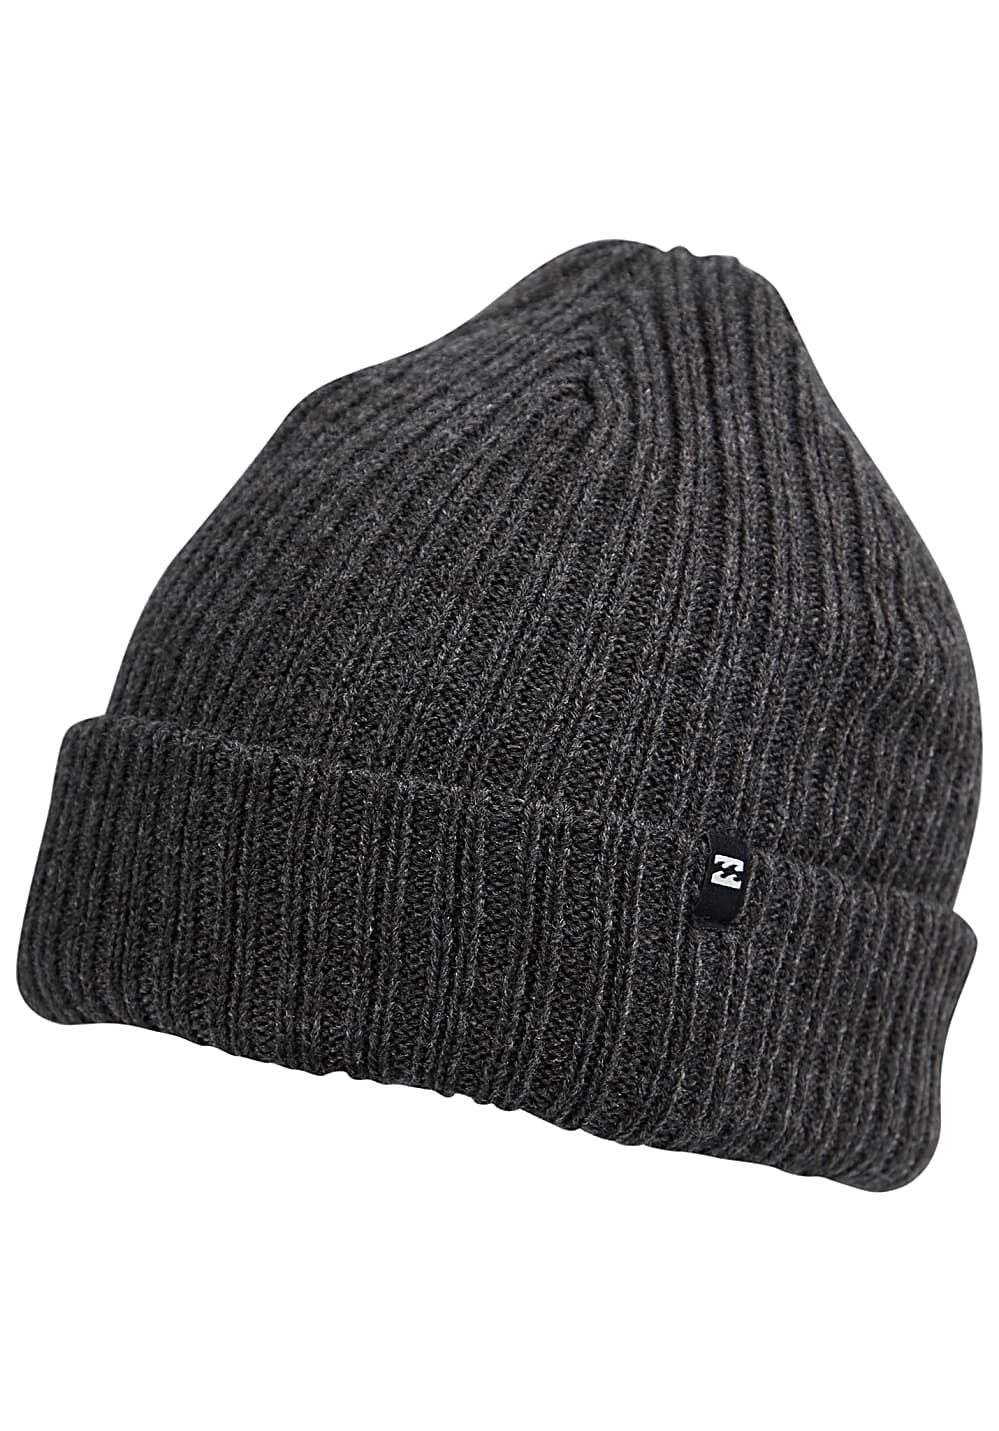 70ed8022192 ... BILLABONG Arcade - Beanie - Black. Back to Overview. -15%